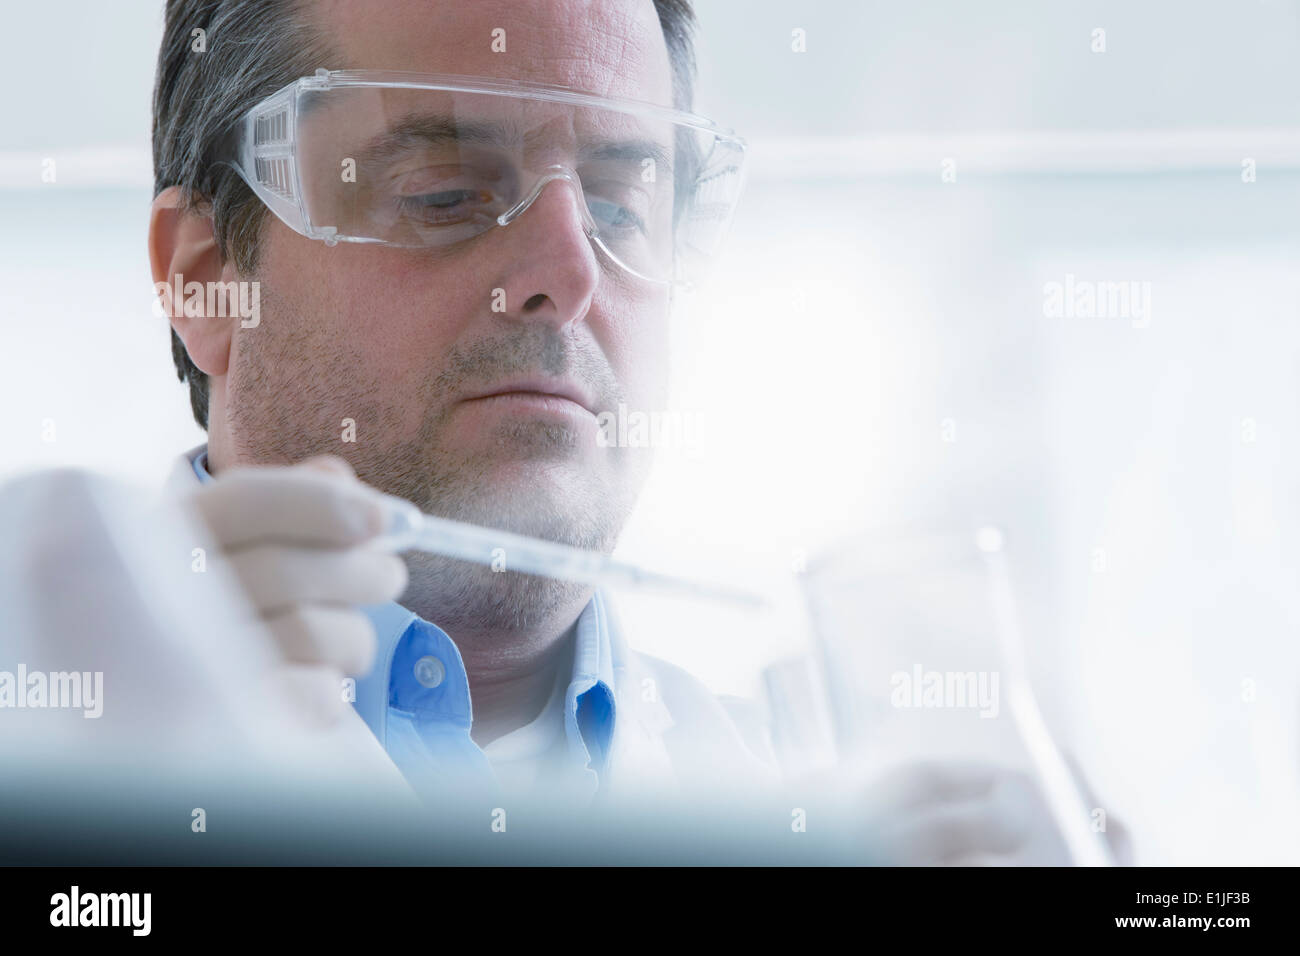 Scientist holding dropper and test tube - Stock Image